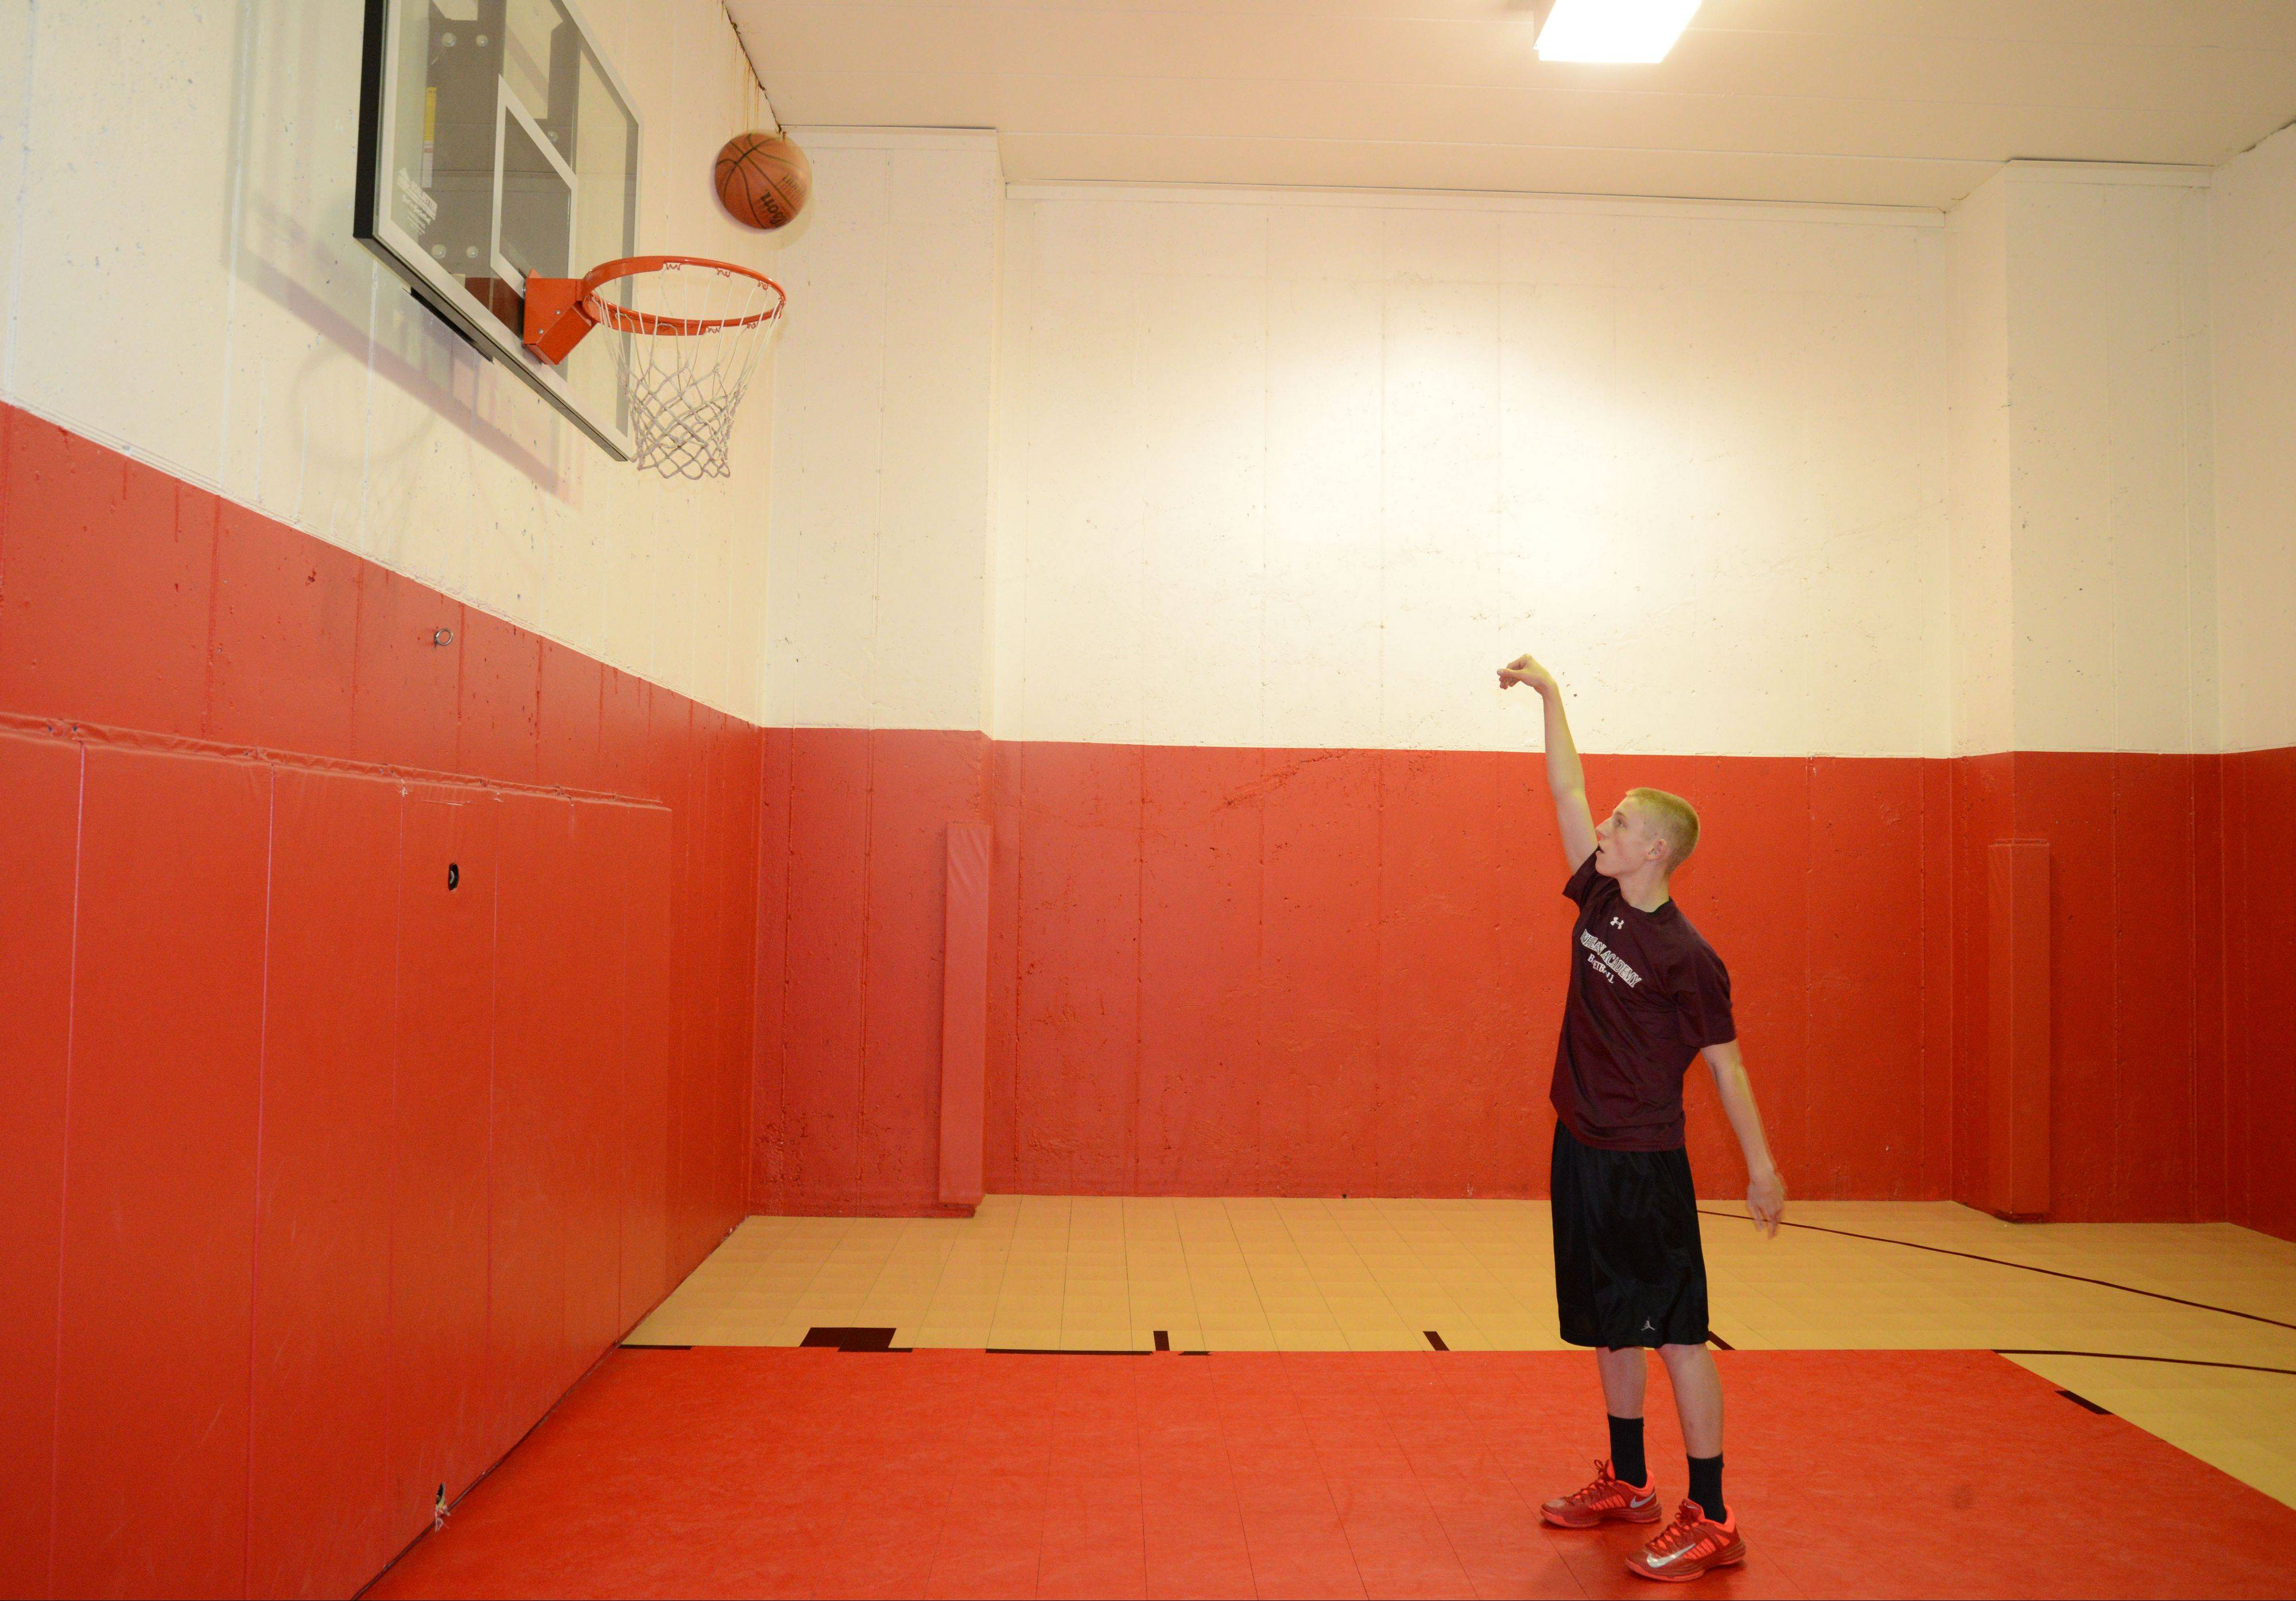 Three-point shooting wiz Josh Ruggles practices from his home basketball court. In a video that went viral, Josh knocked down 135 shots in 5 minutes, missing only 12.